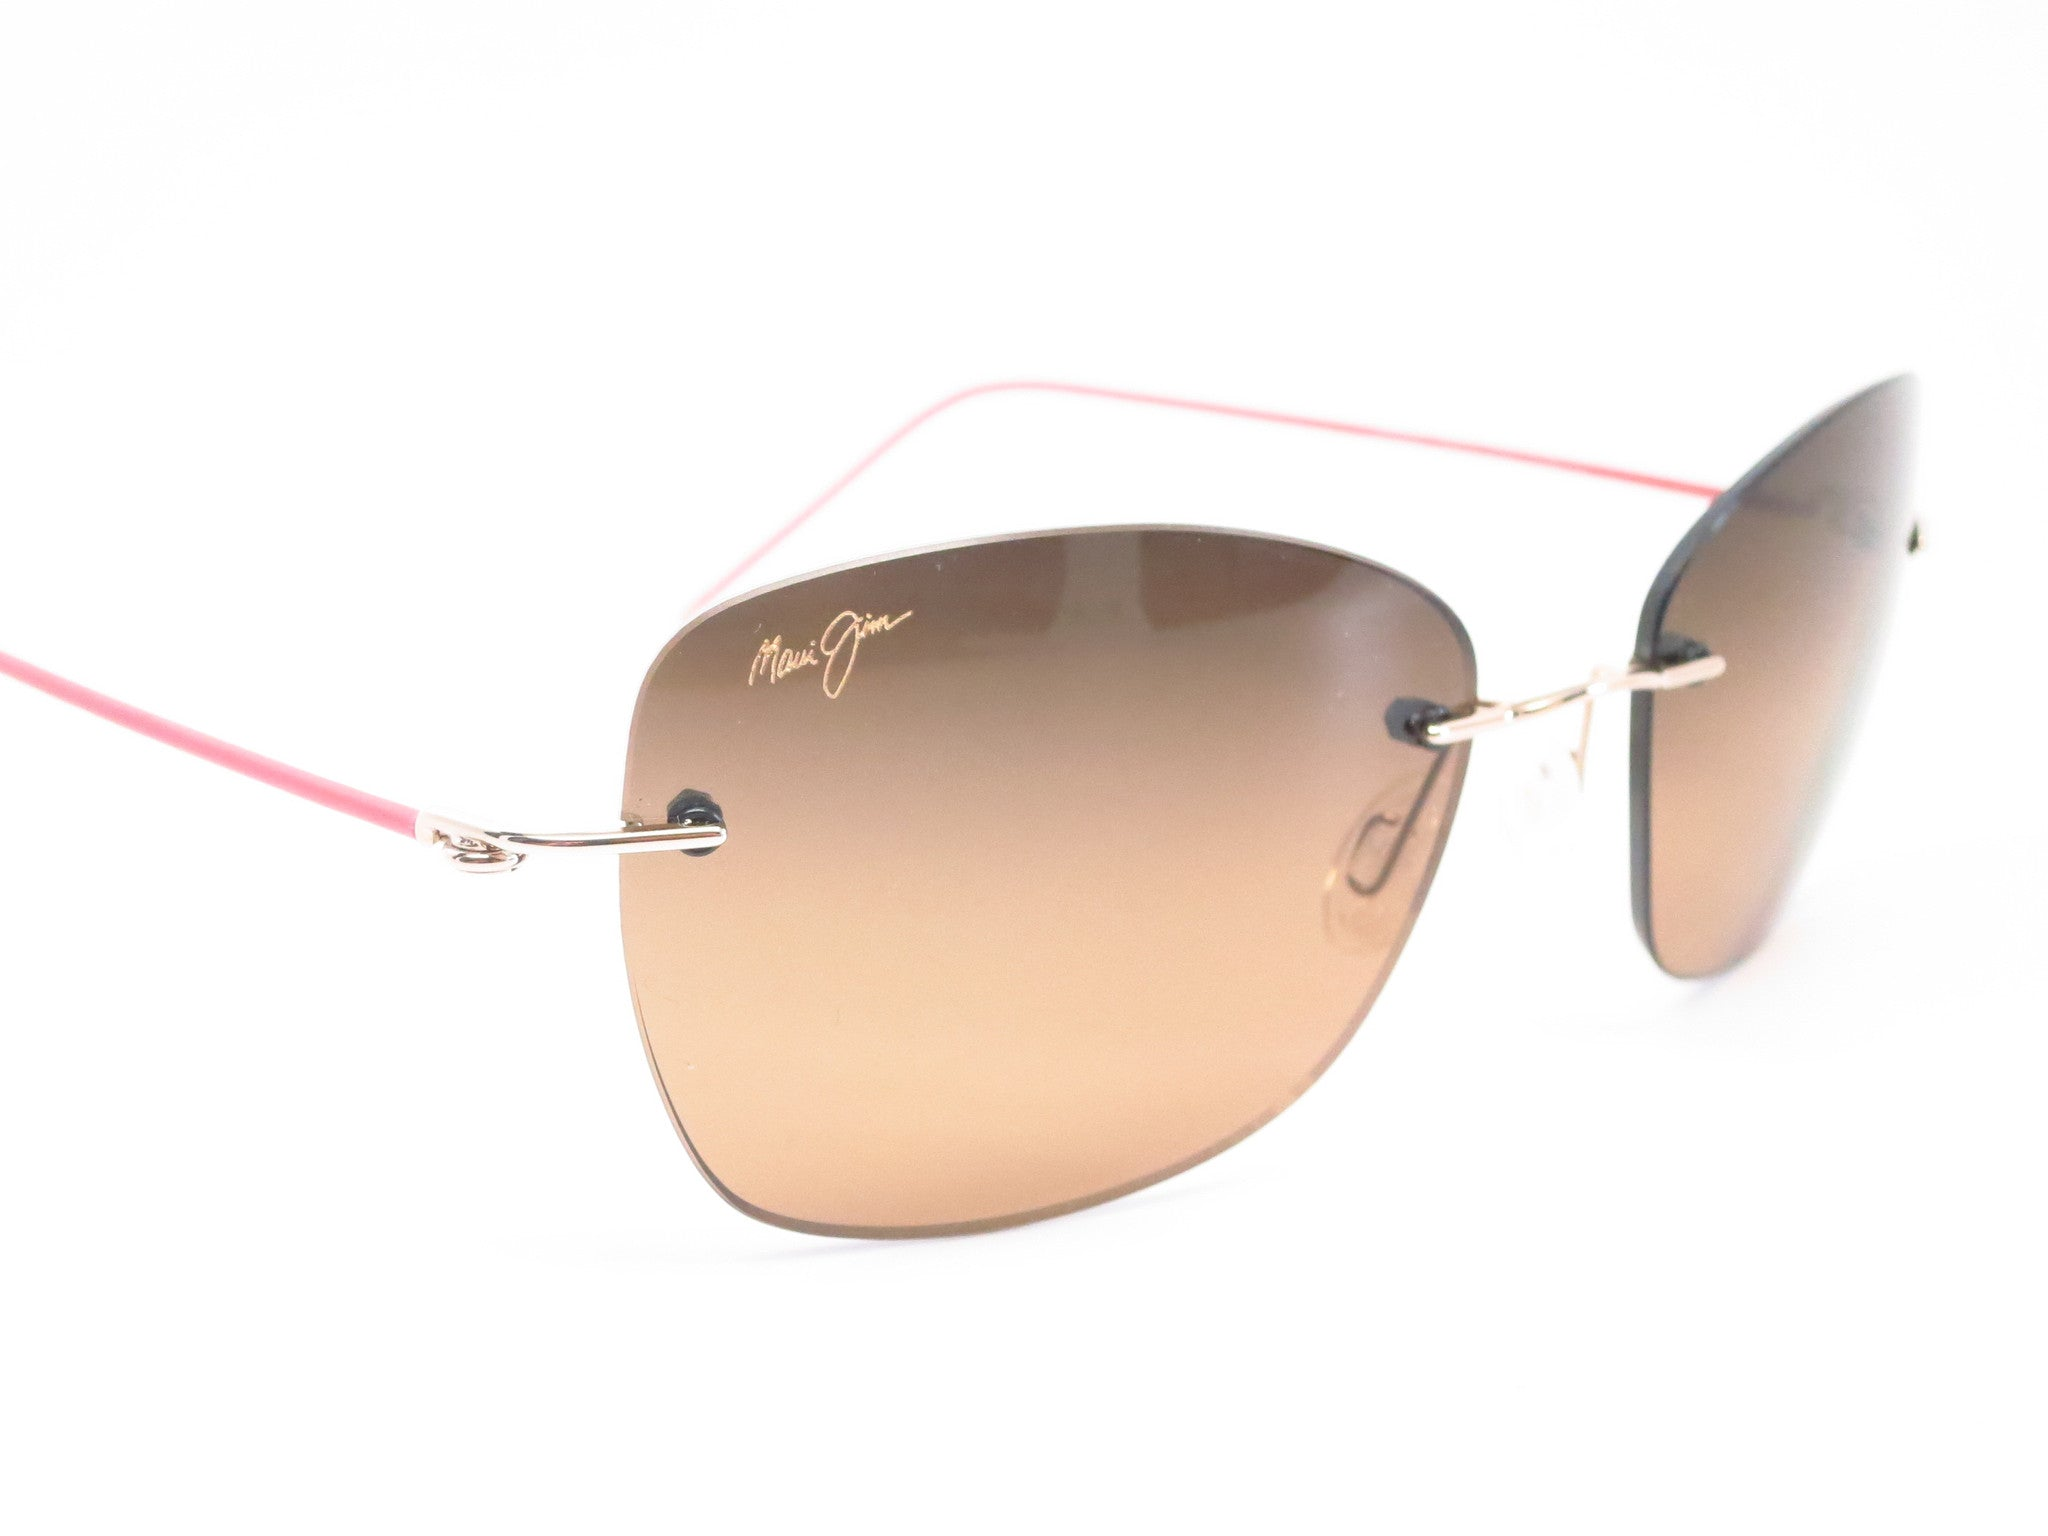 be6fcf60b32f ... Maui Jim Apapane MJ HS717-16 Gold Pink sleeve Polarized Sunglasses -  Eye Heart ...